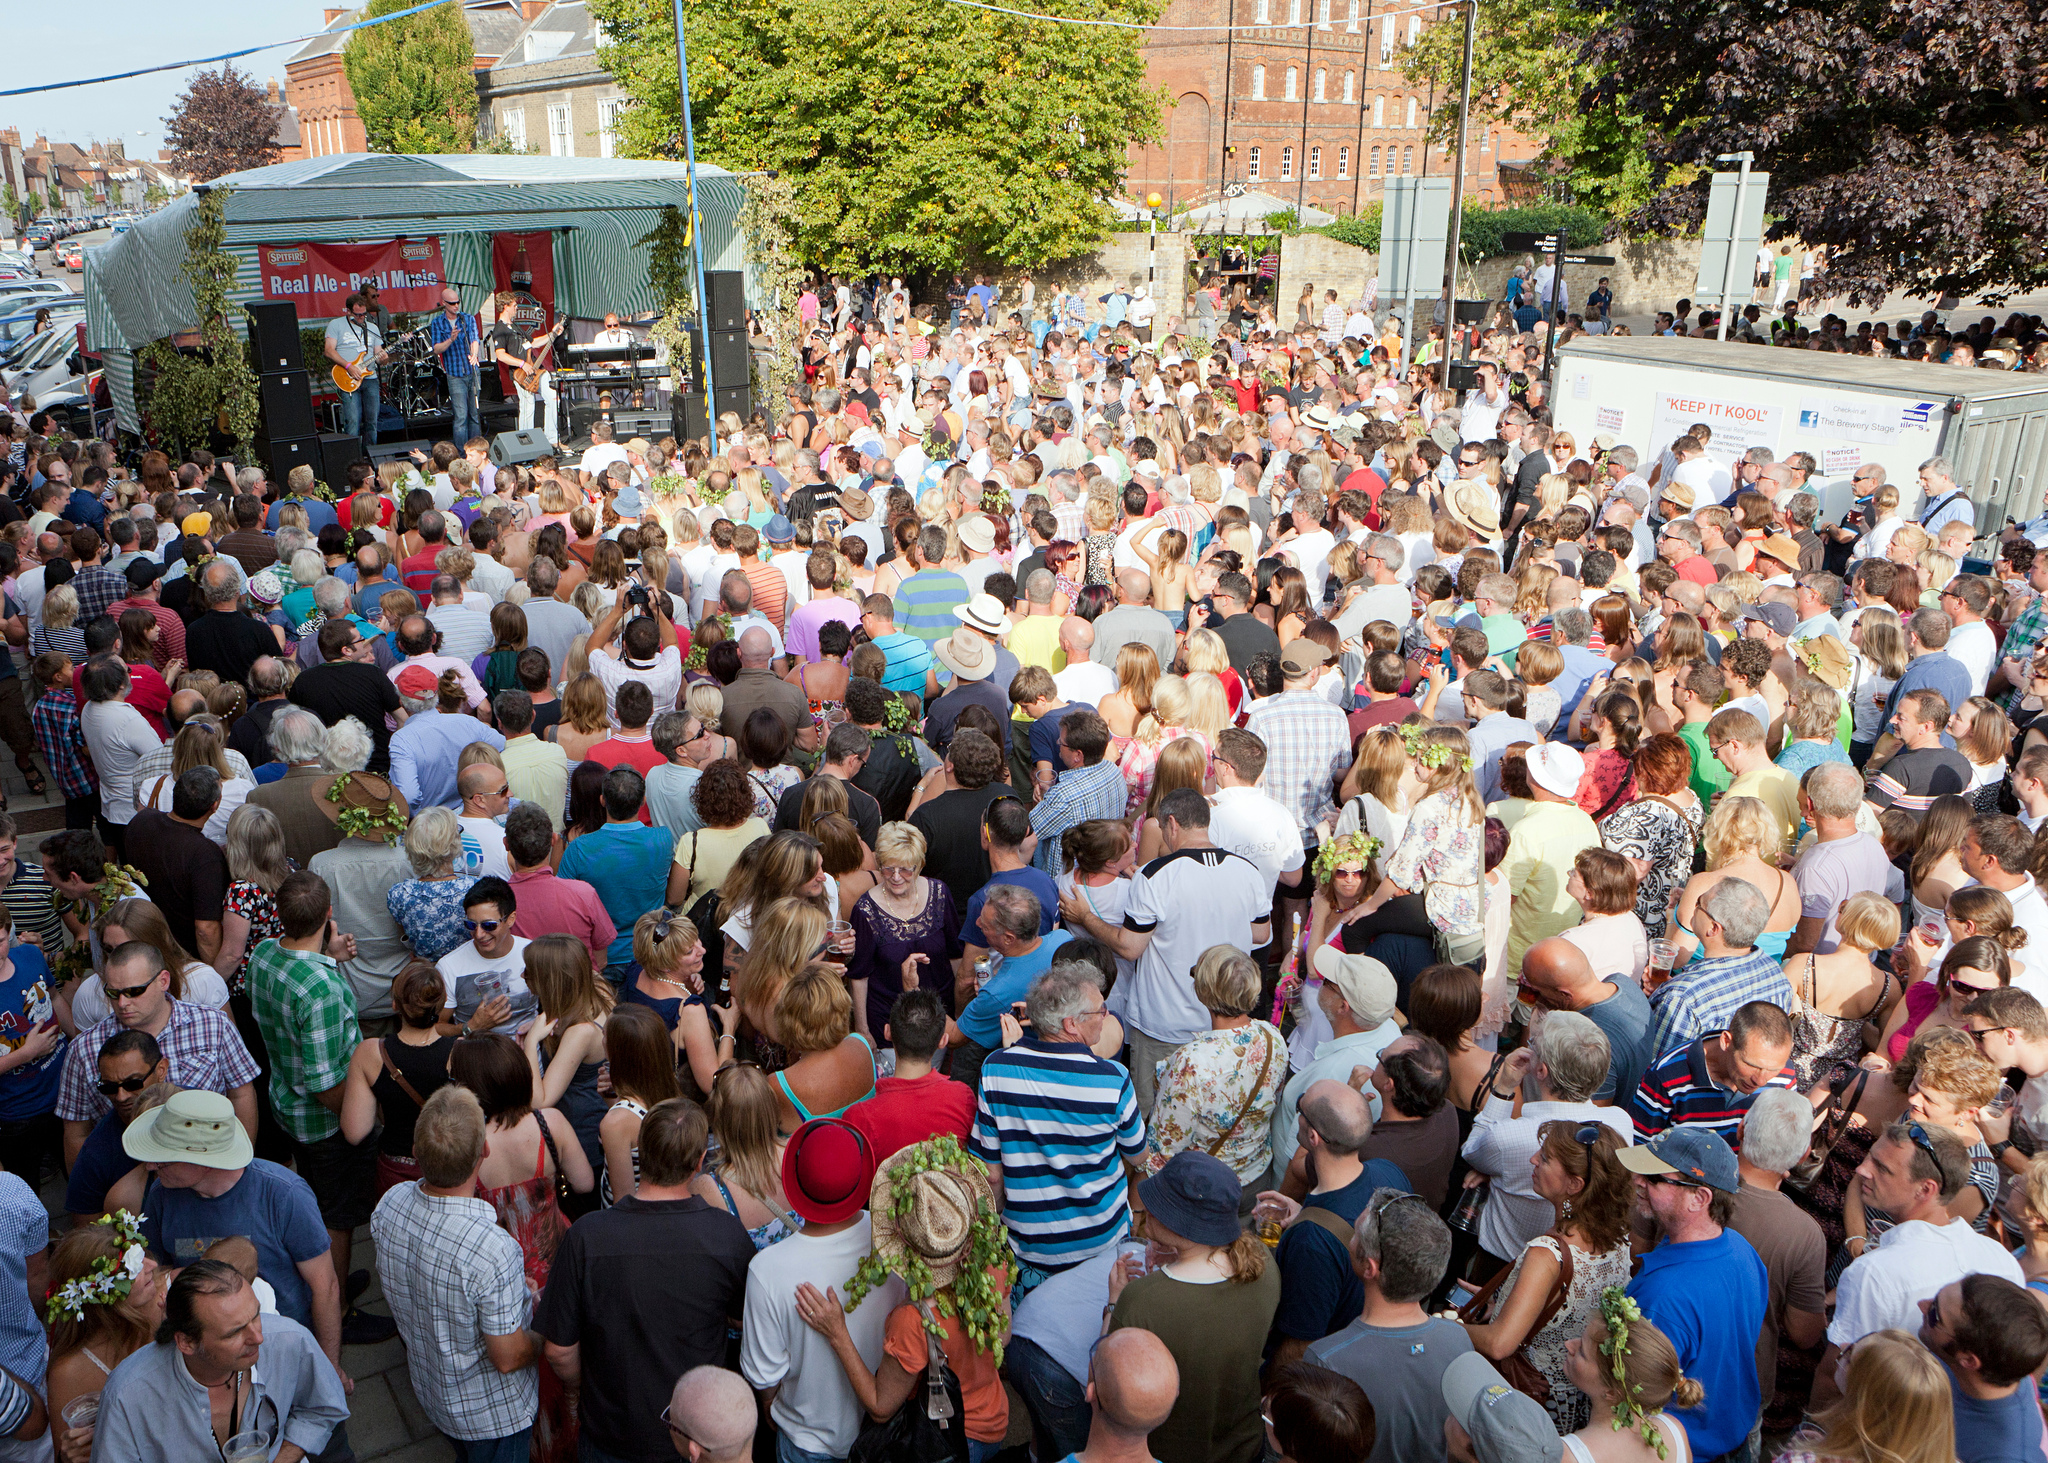 Crowds of people at Faversham Hop Festival © Visit Kent